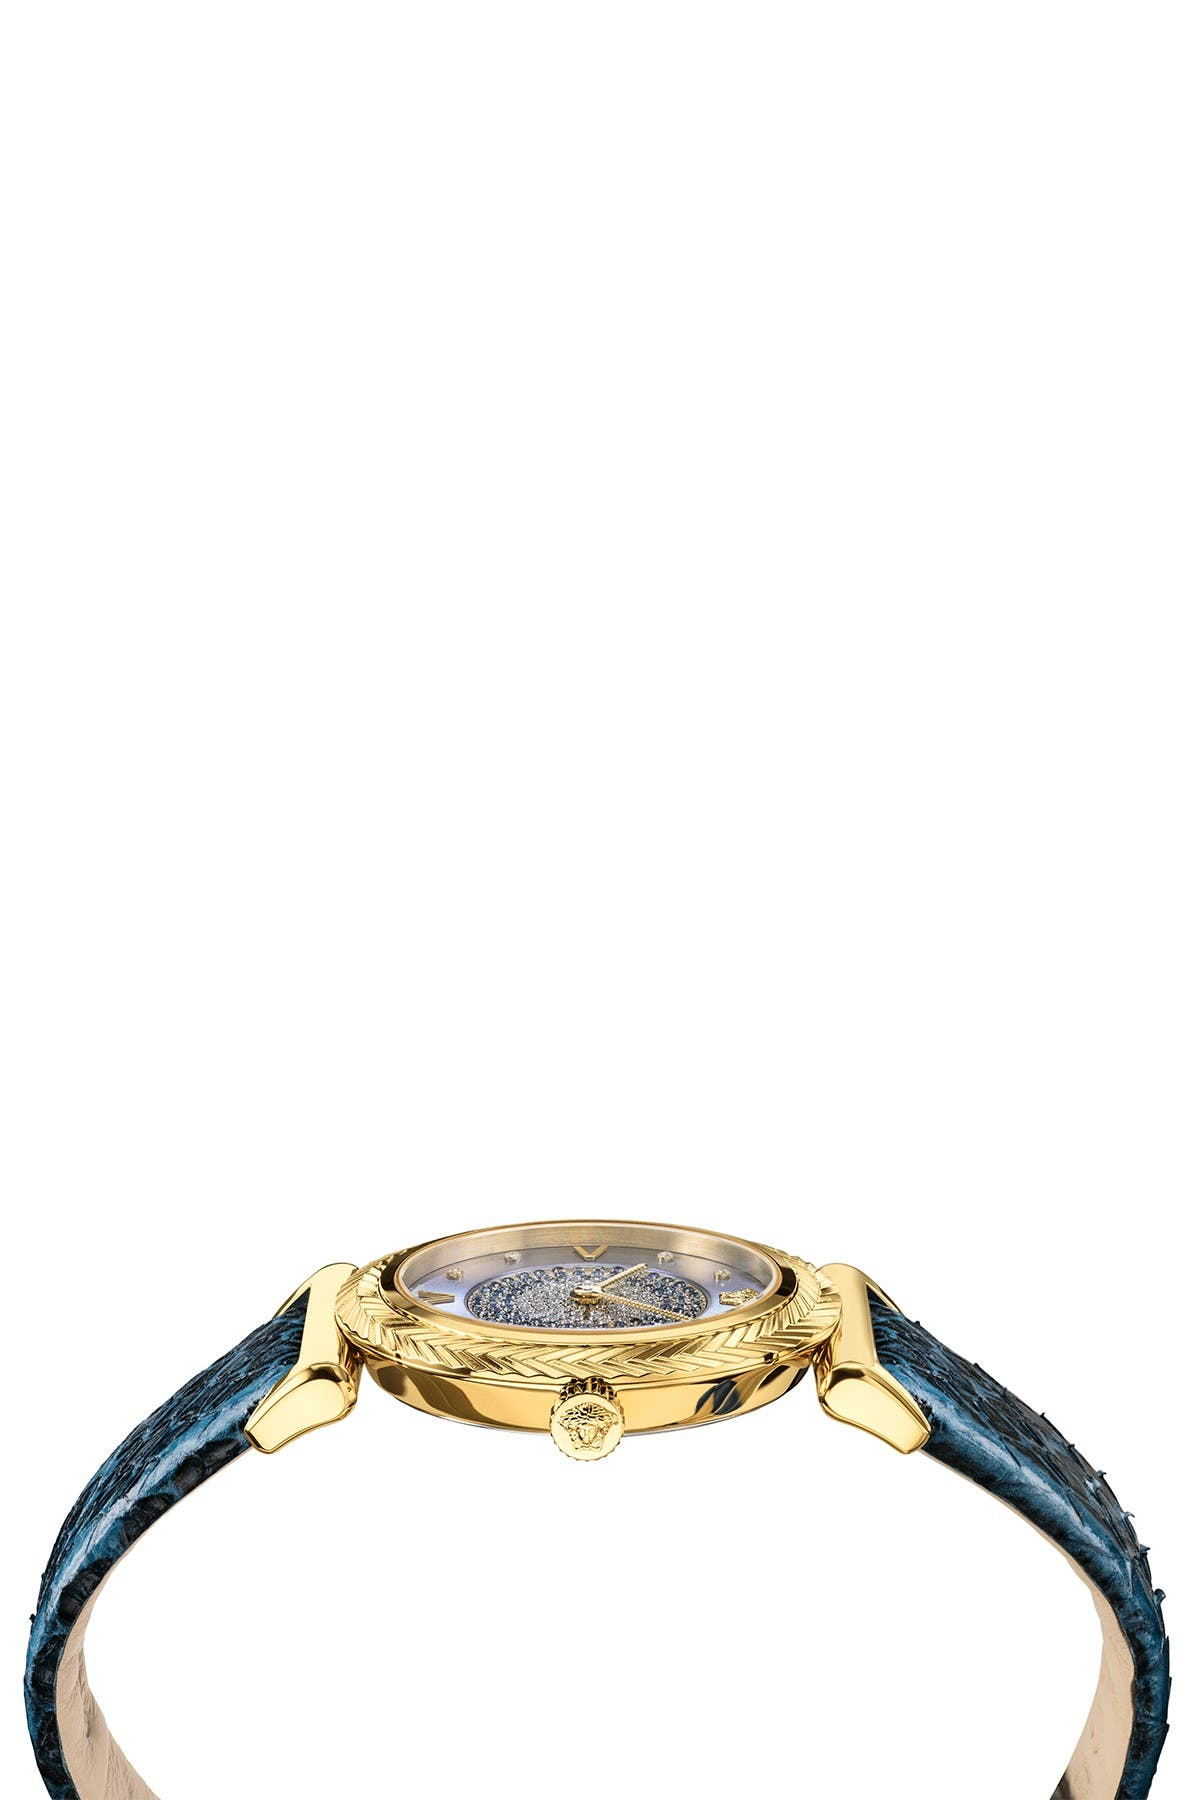 Image of Versace Women's V-Motif Snake Embossed Leather Strap Watch, 35mm